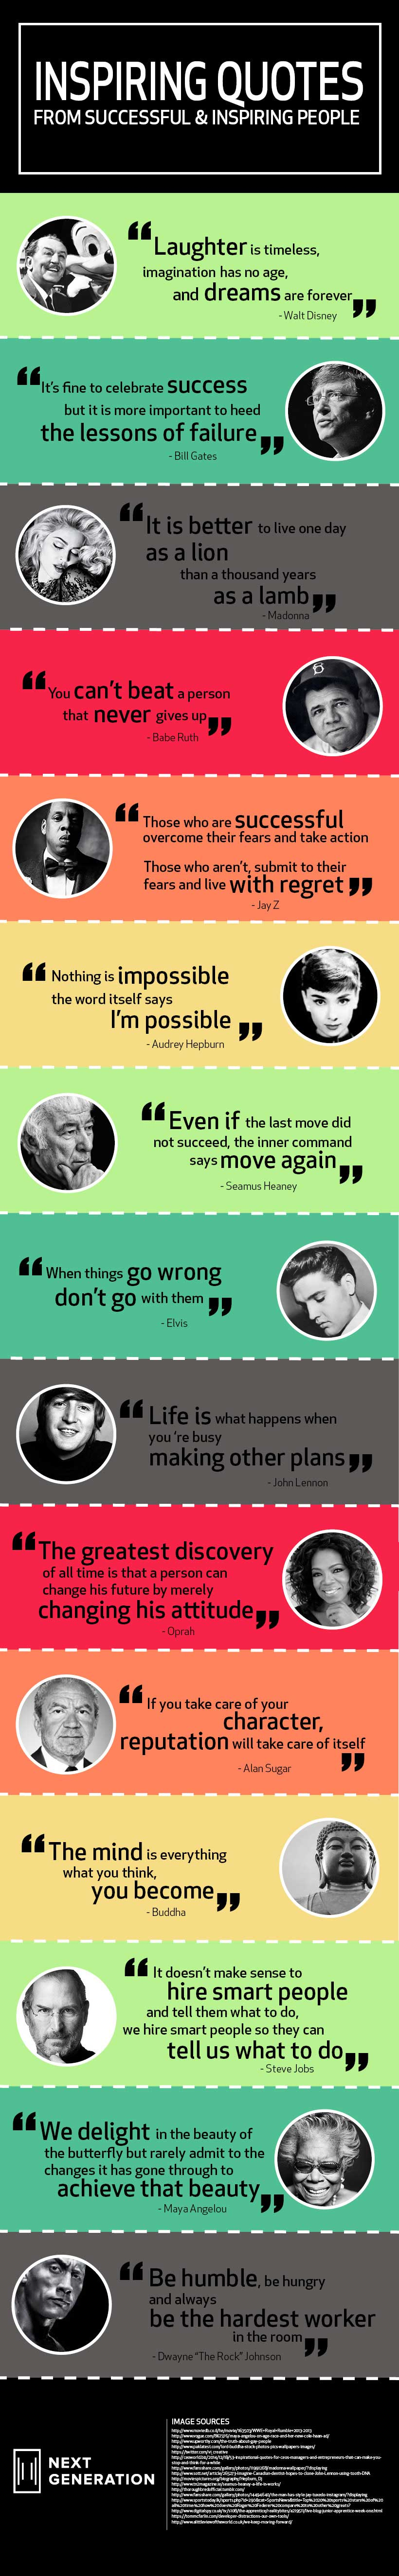 Infographic Inspiring Quotes From Successful Leaders Next Generation